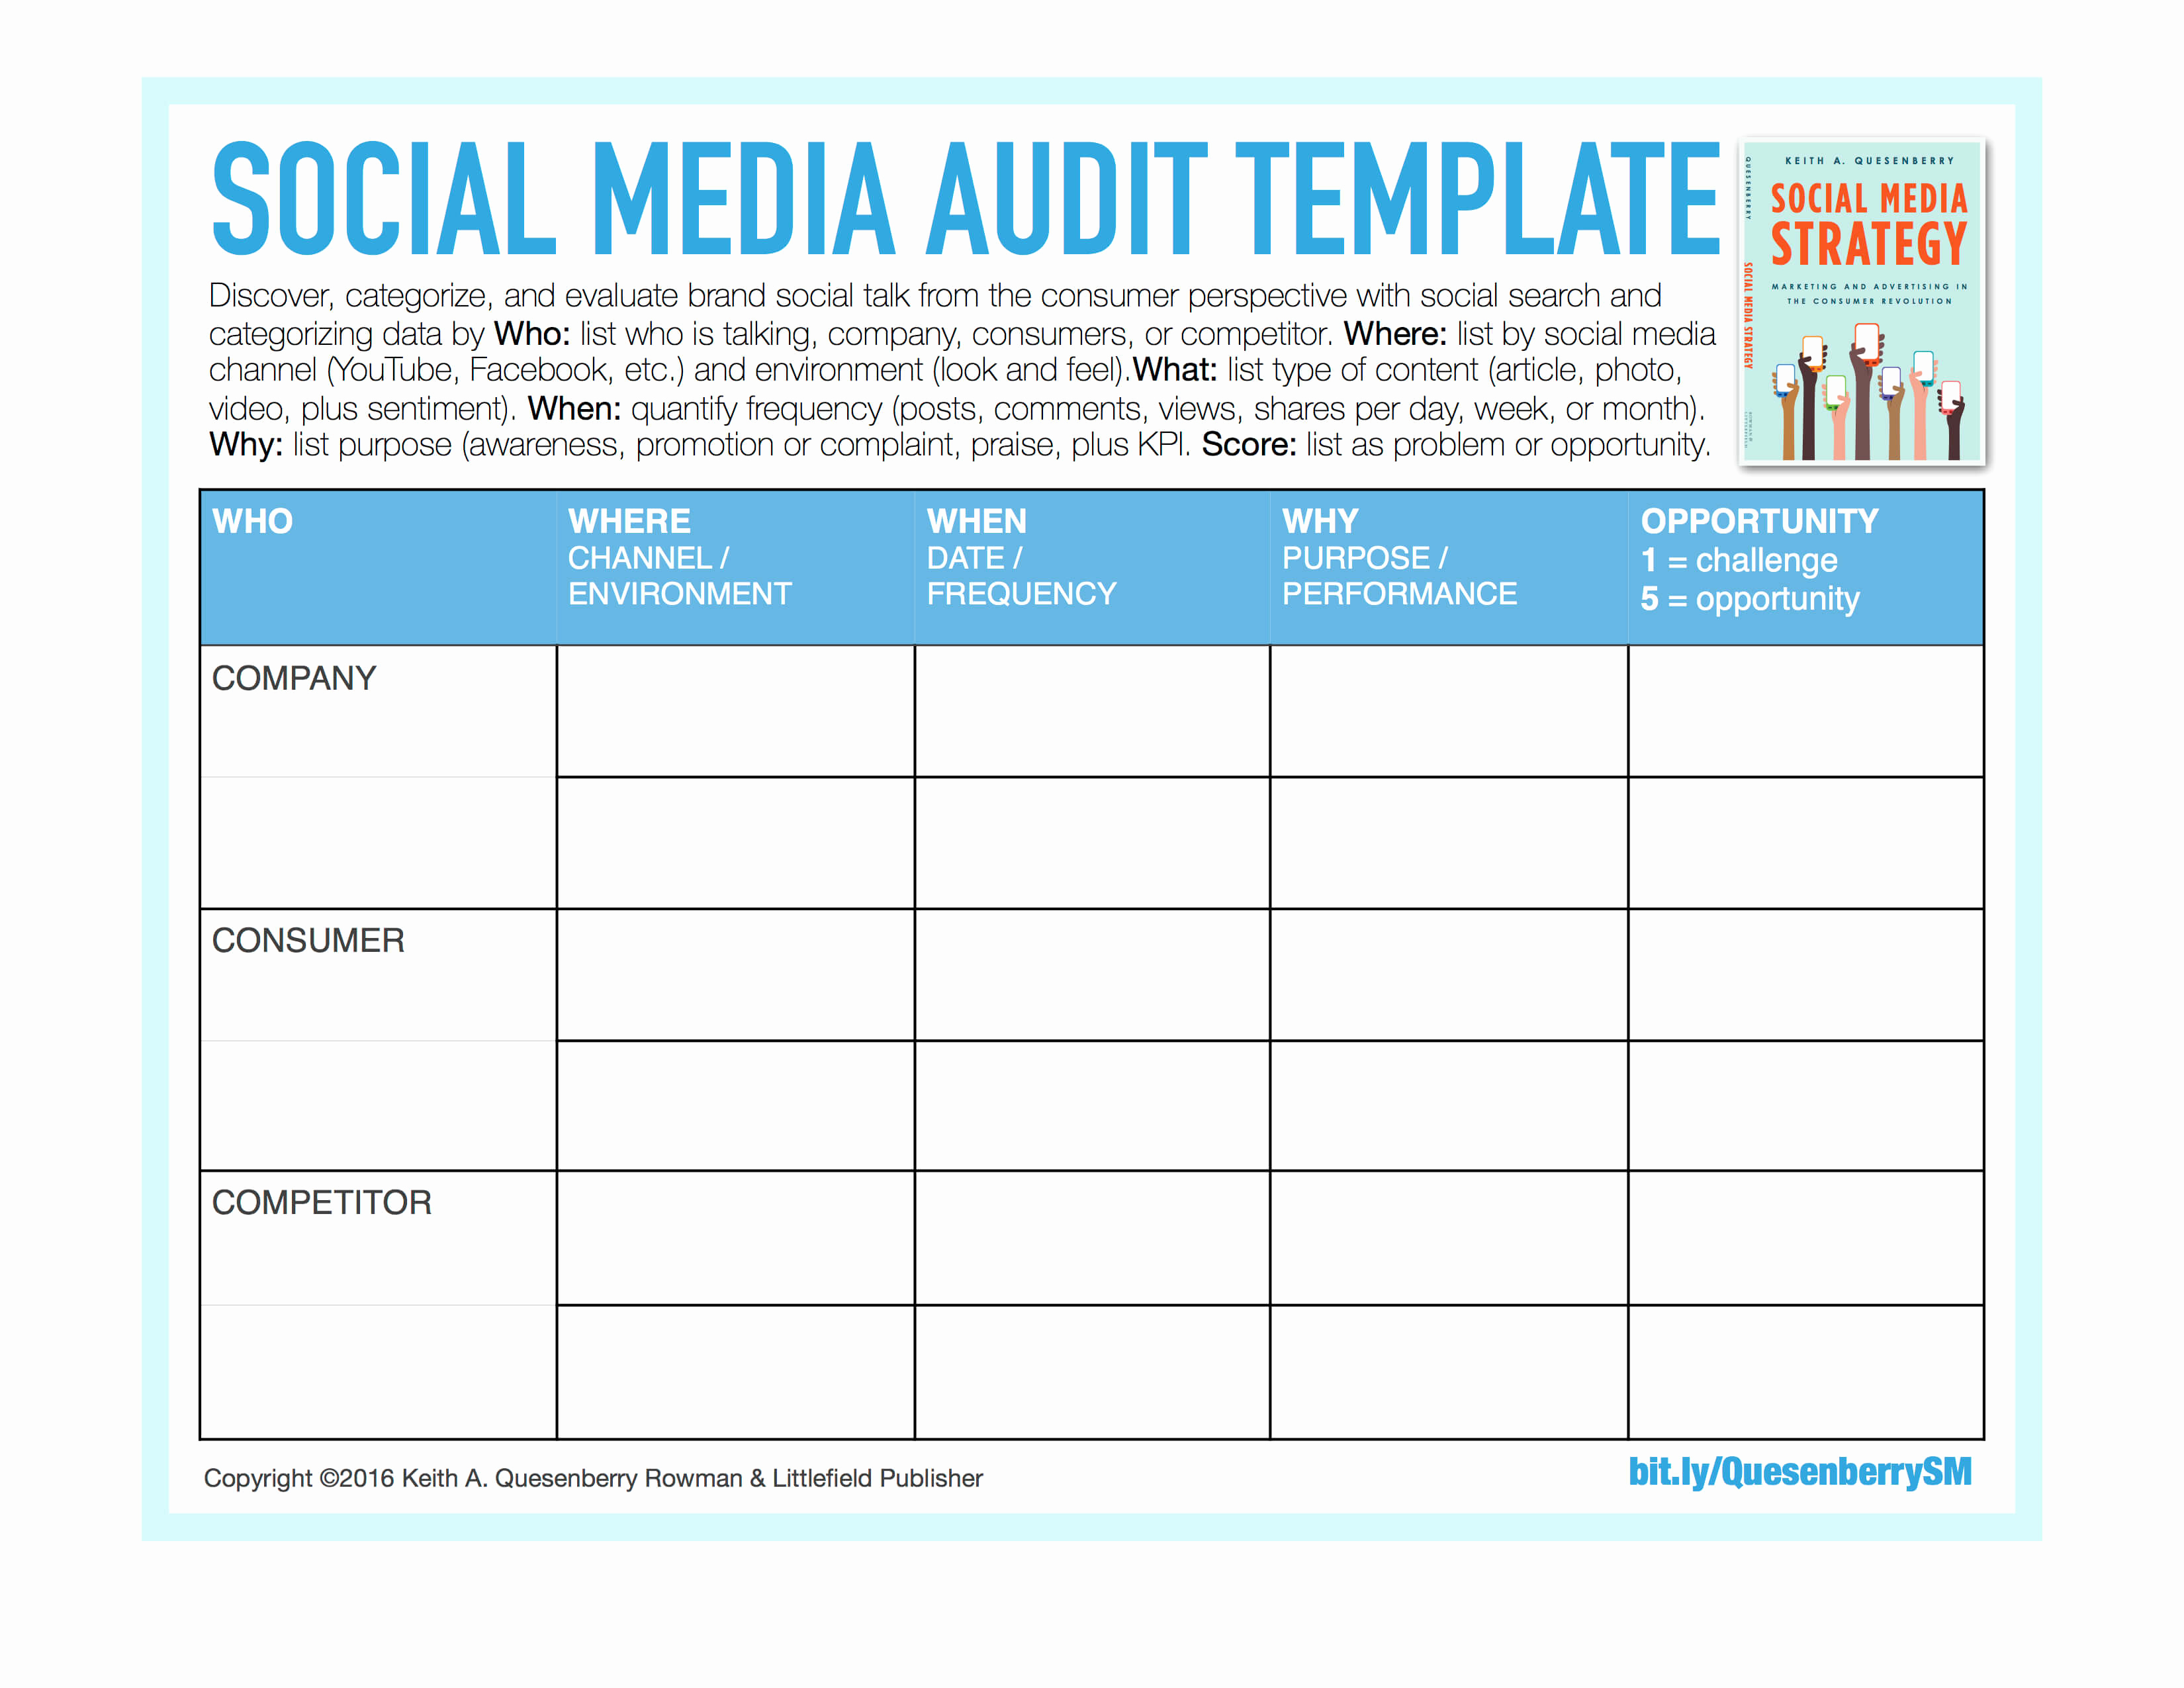 Social Media Reporting Templates Luxury social Media Templates Keith A Quesenberry